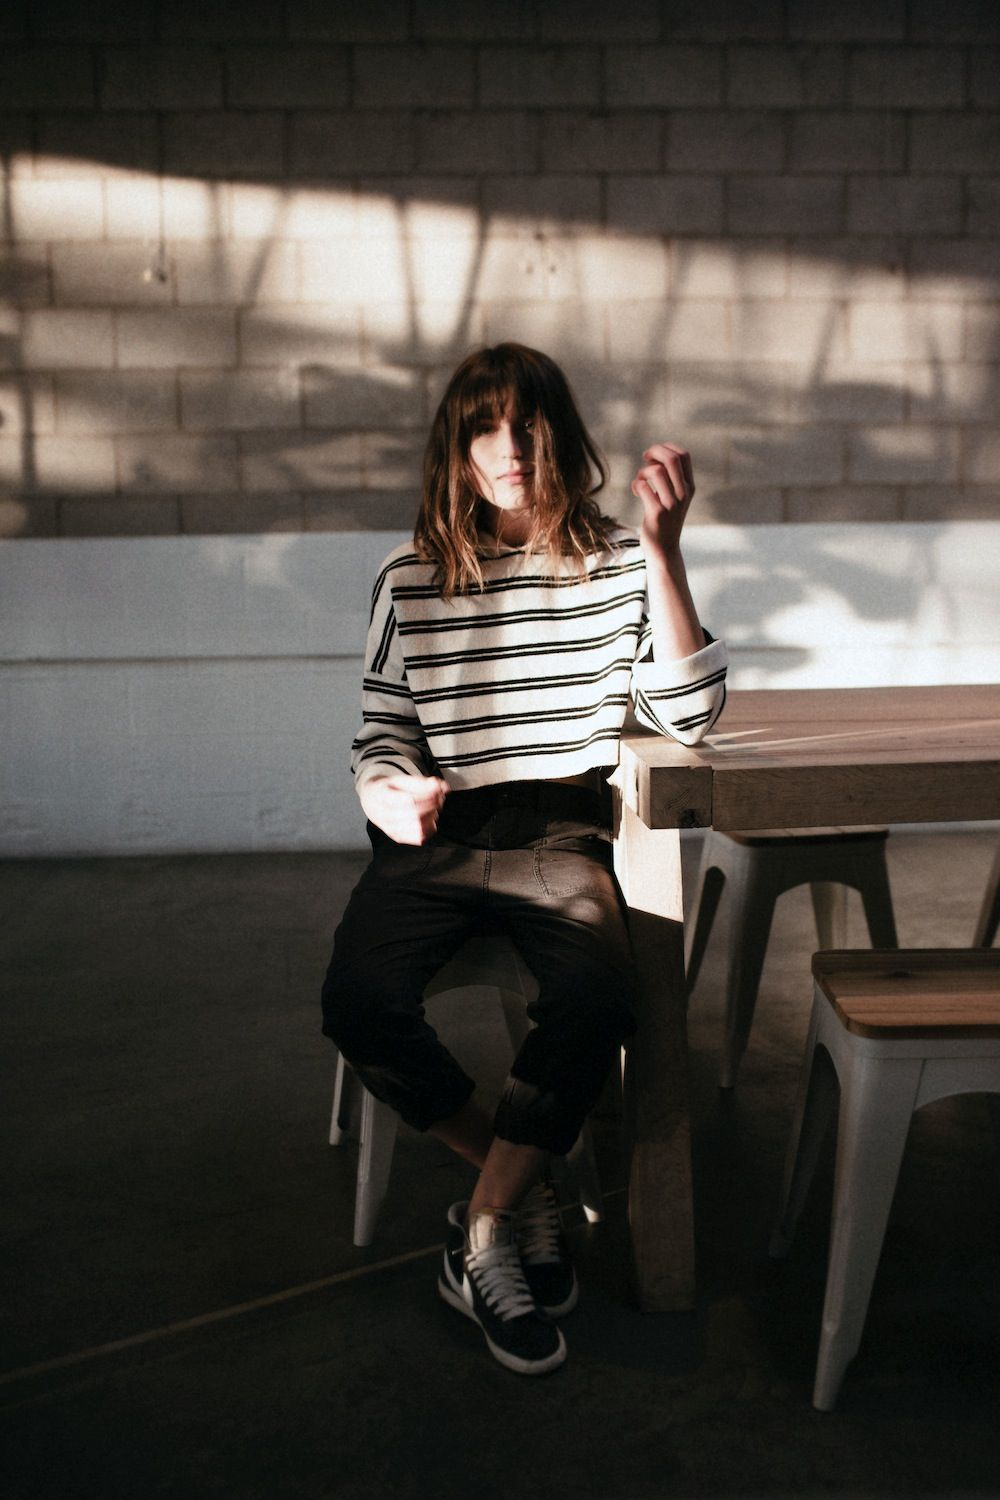 Urban Outfitters - Blog - About A Girl: Rima Vaidila